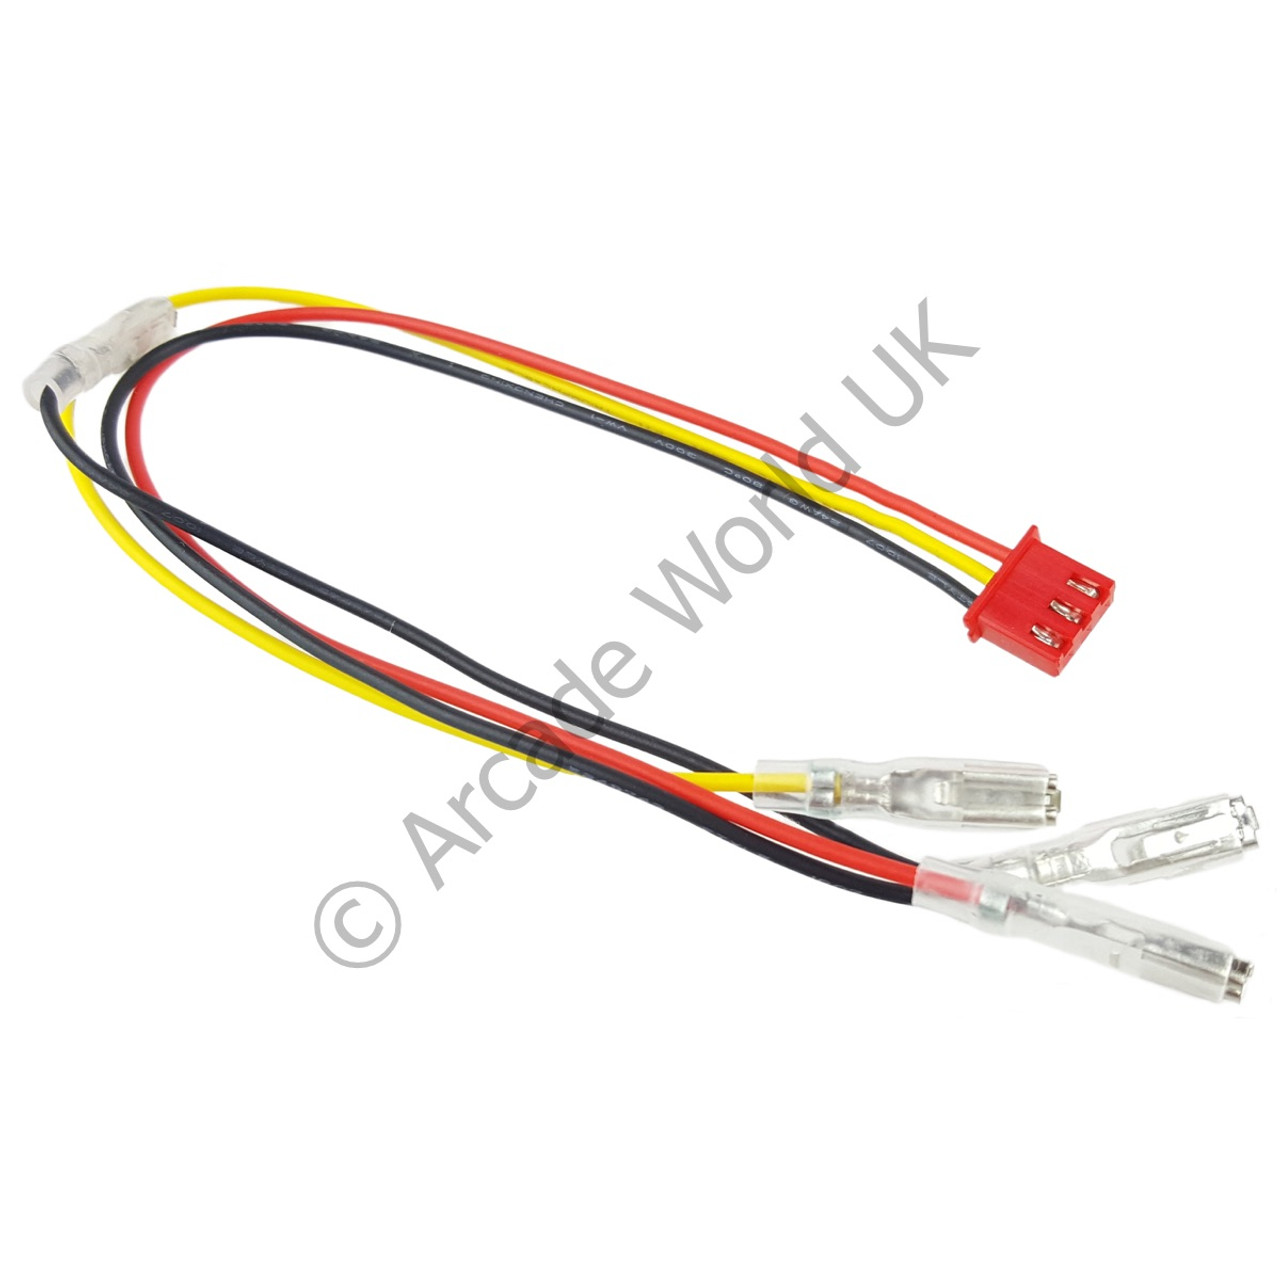 Awe Inspiring Replacement 3 Wire Led Harness For Zero Delay Usb Board Arcade Wiring Cloud Hisonuggs Outletorg